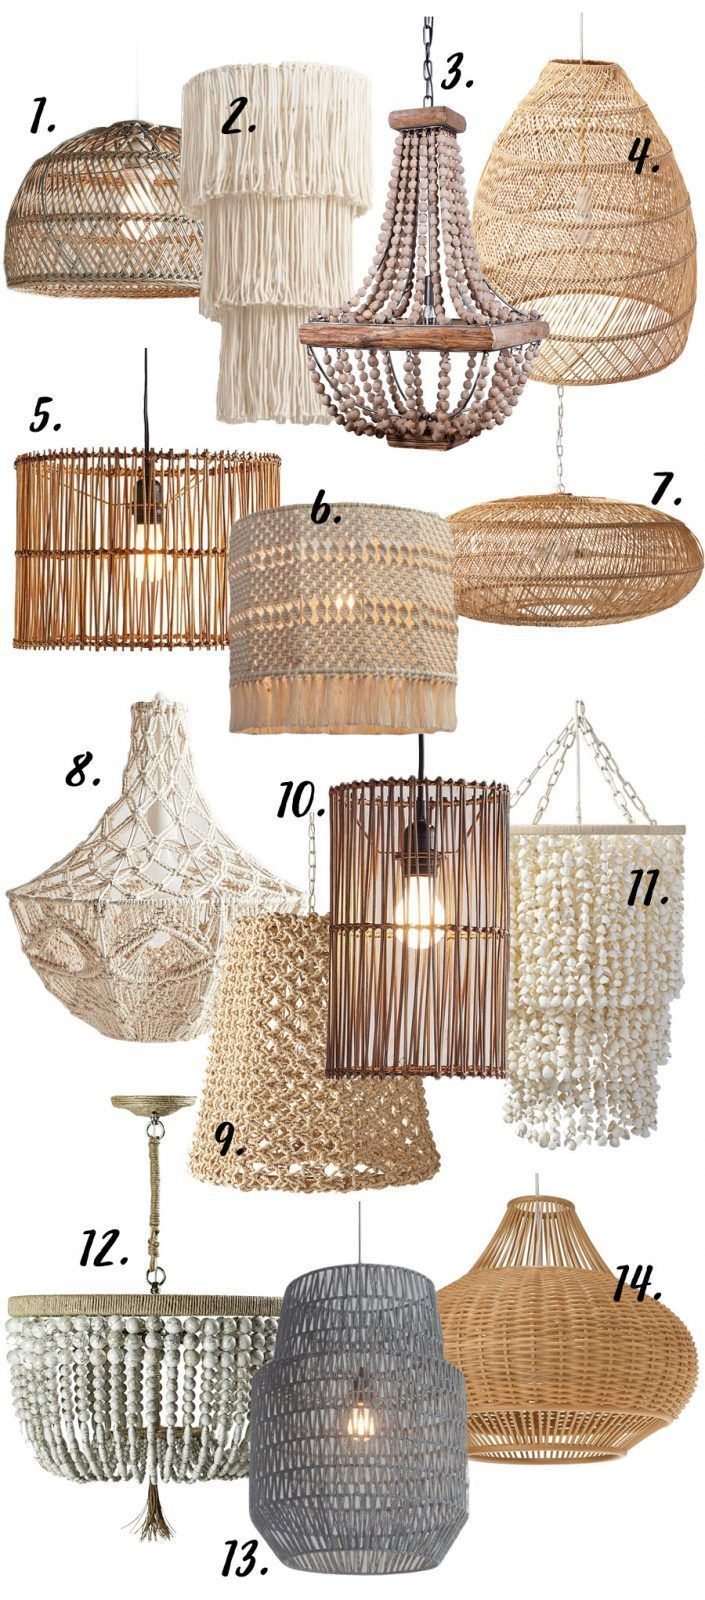 MODERN BOHO CHANDELIERS  PENDANT LIGHTS  14 CHIC OPTIONS MODERN BOHO CHANDELIERS  PENDANT LIGHTS  14 CHIC OPTIONS